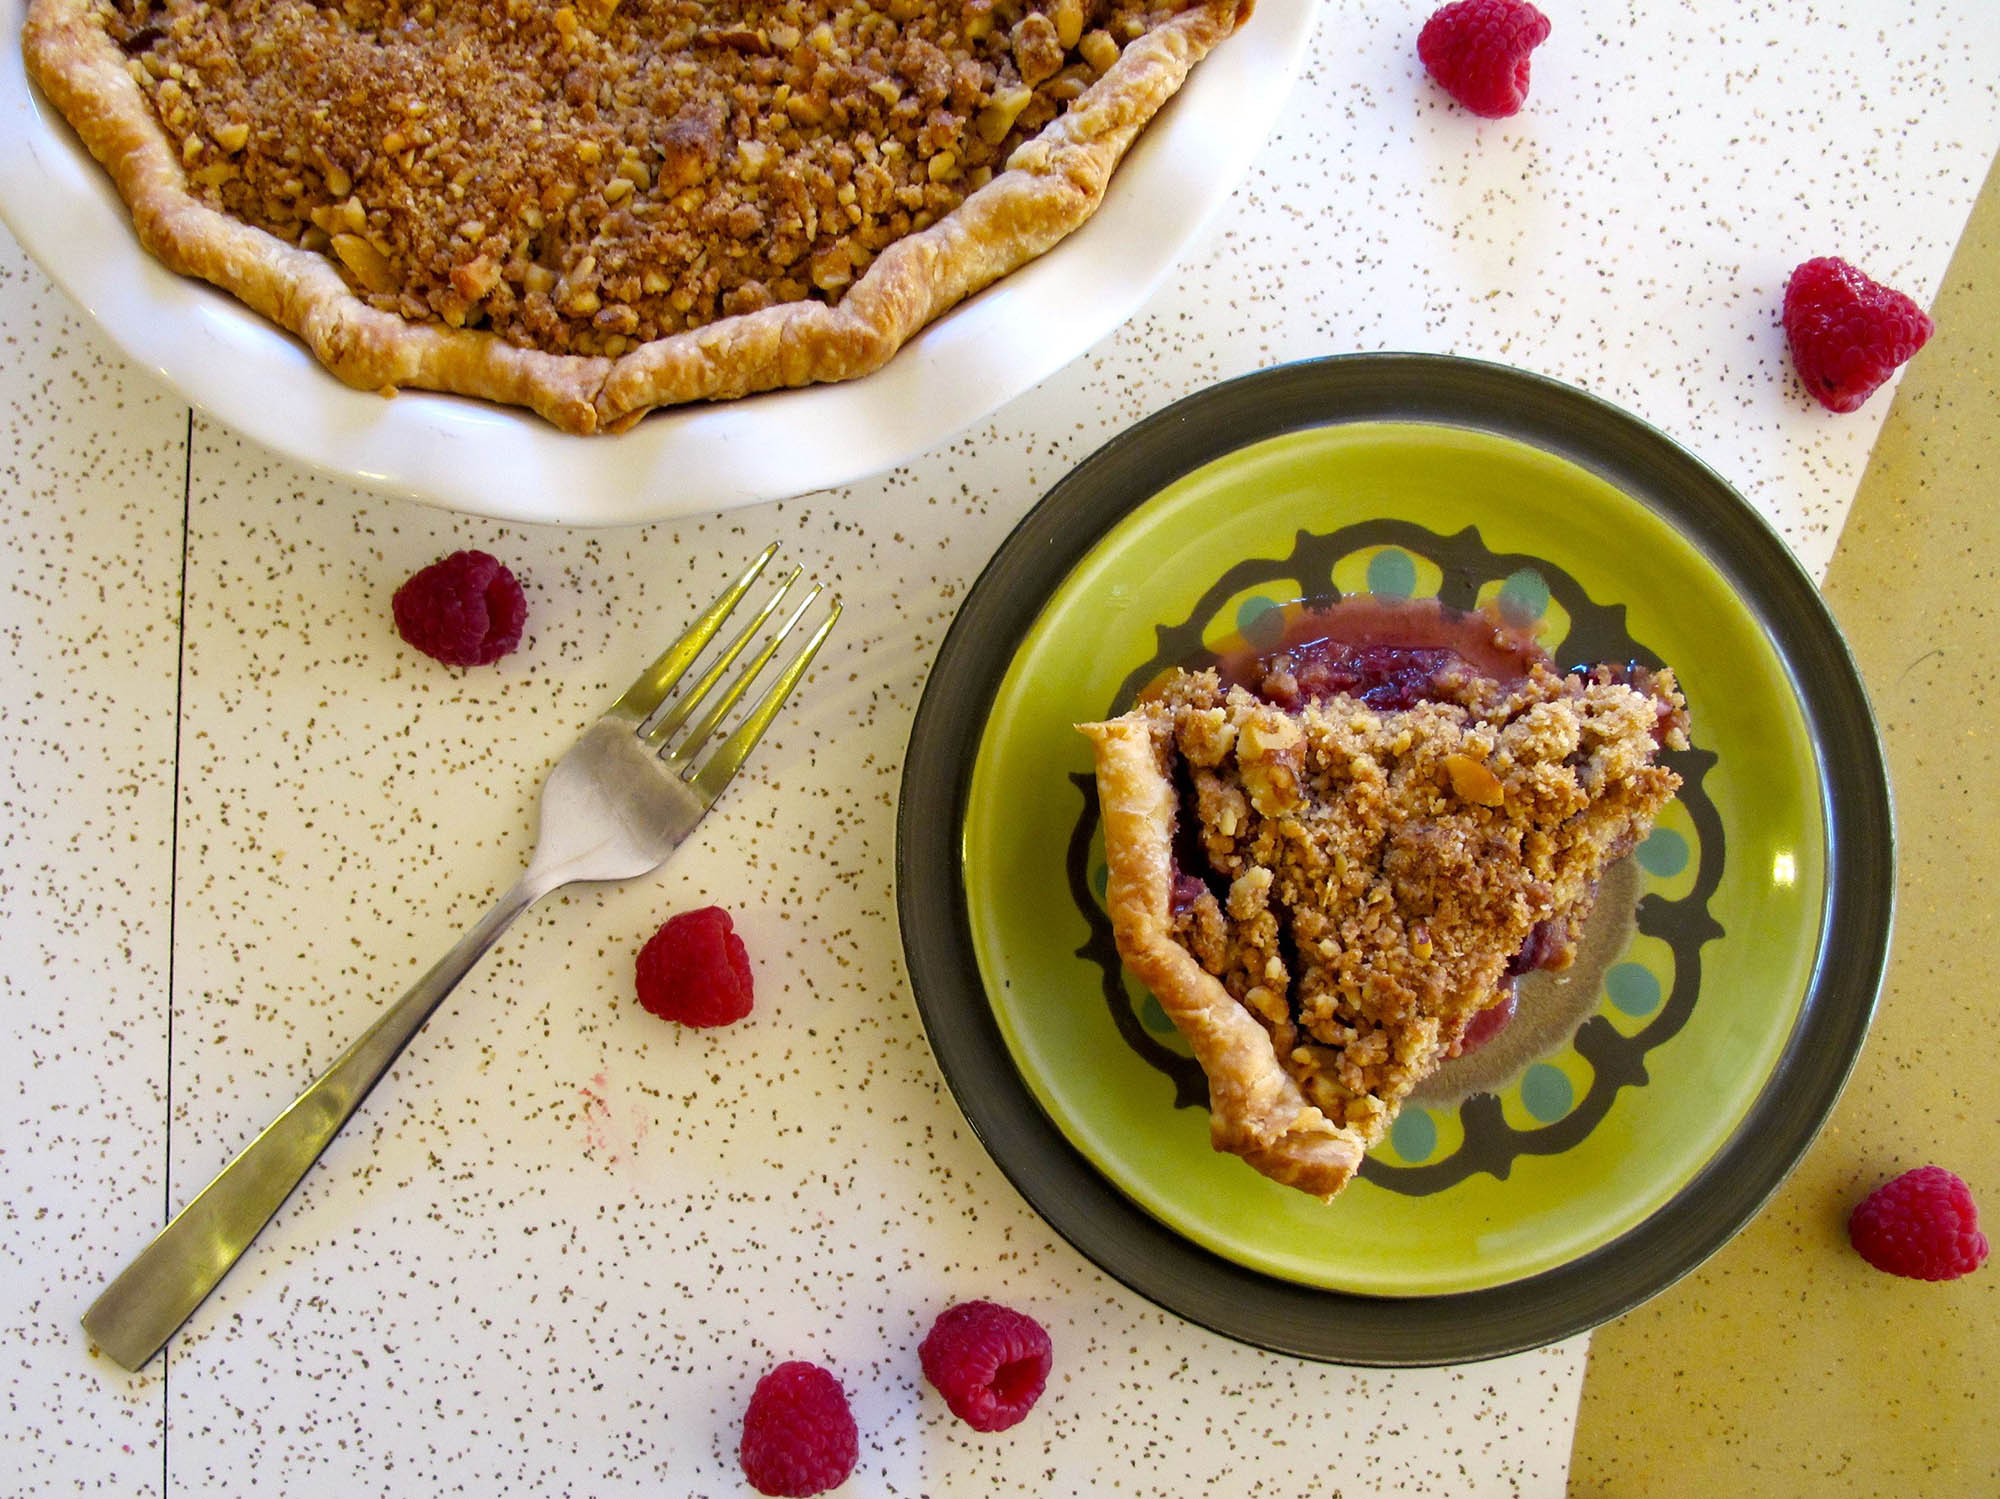 Raspberry Pie with Walnut Crumble and Bourbon Whipped Cream